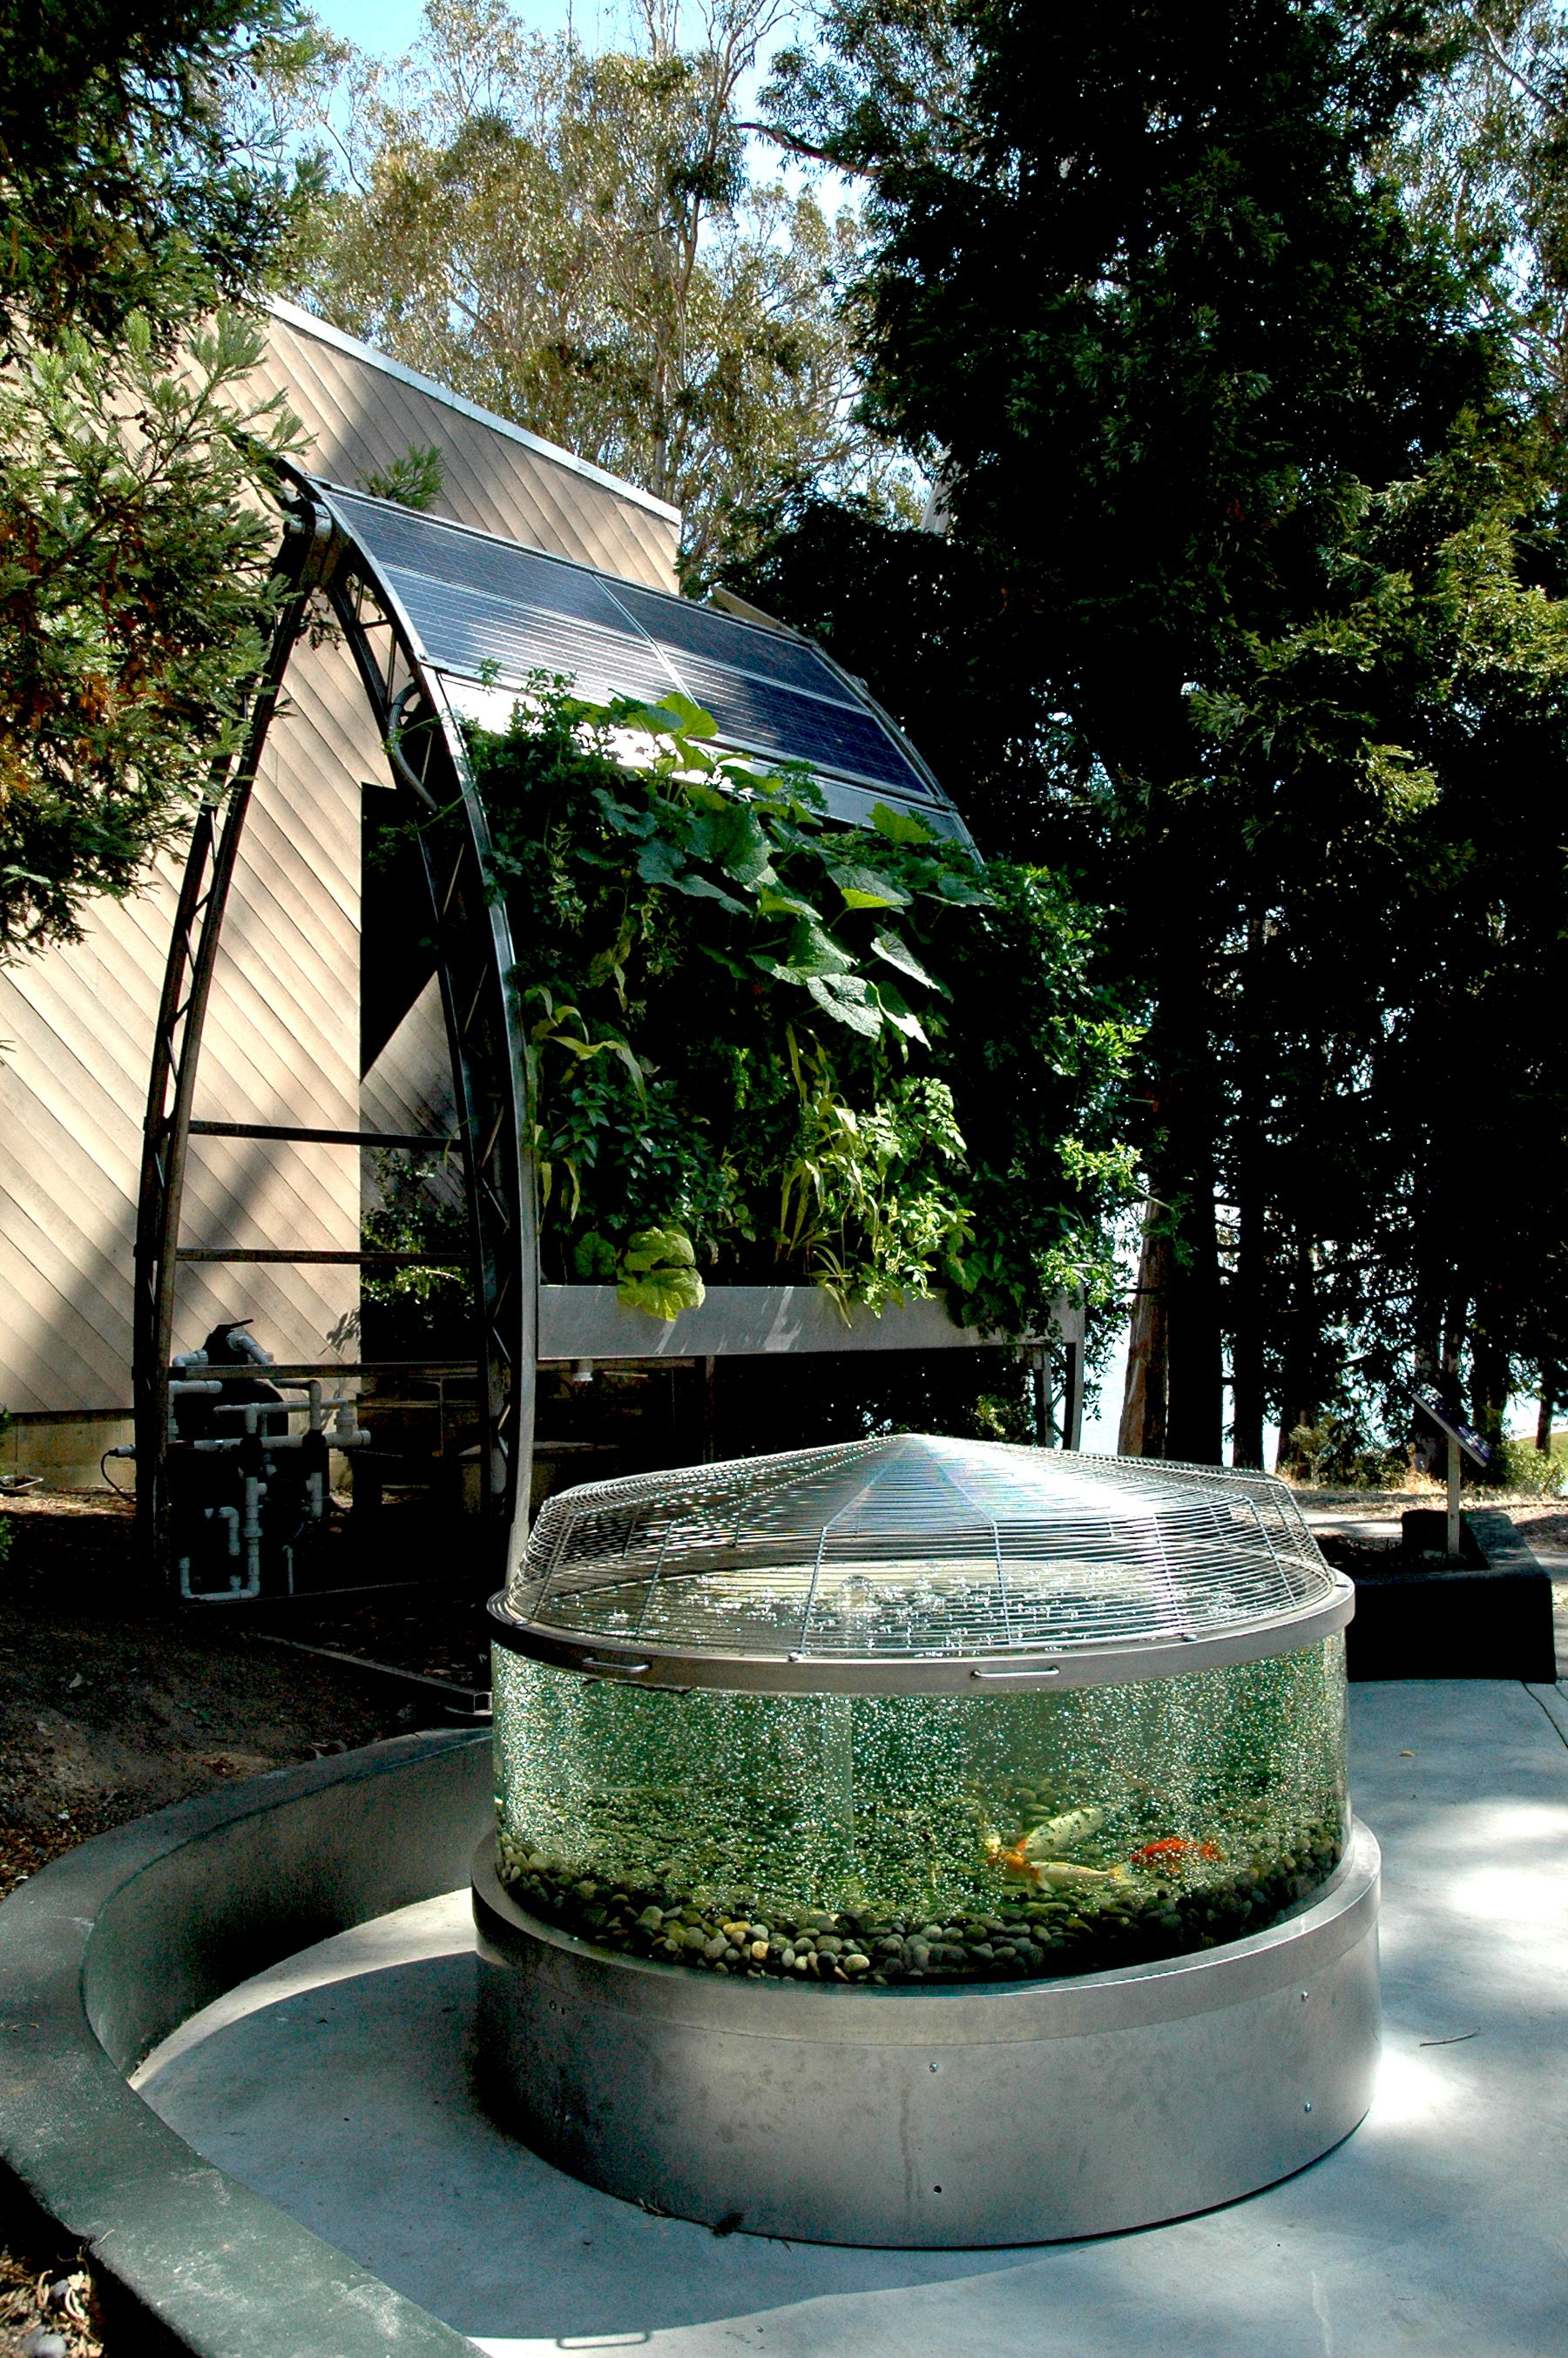 Solar powered hydroponic and aquaponic edible wall garden for Hydrokultur design